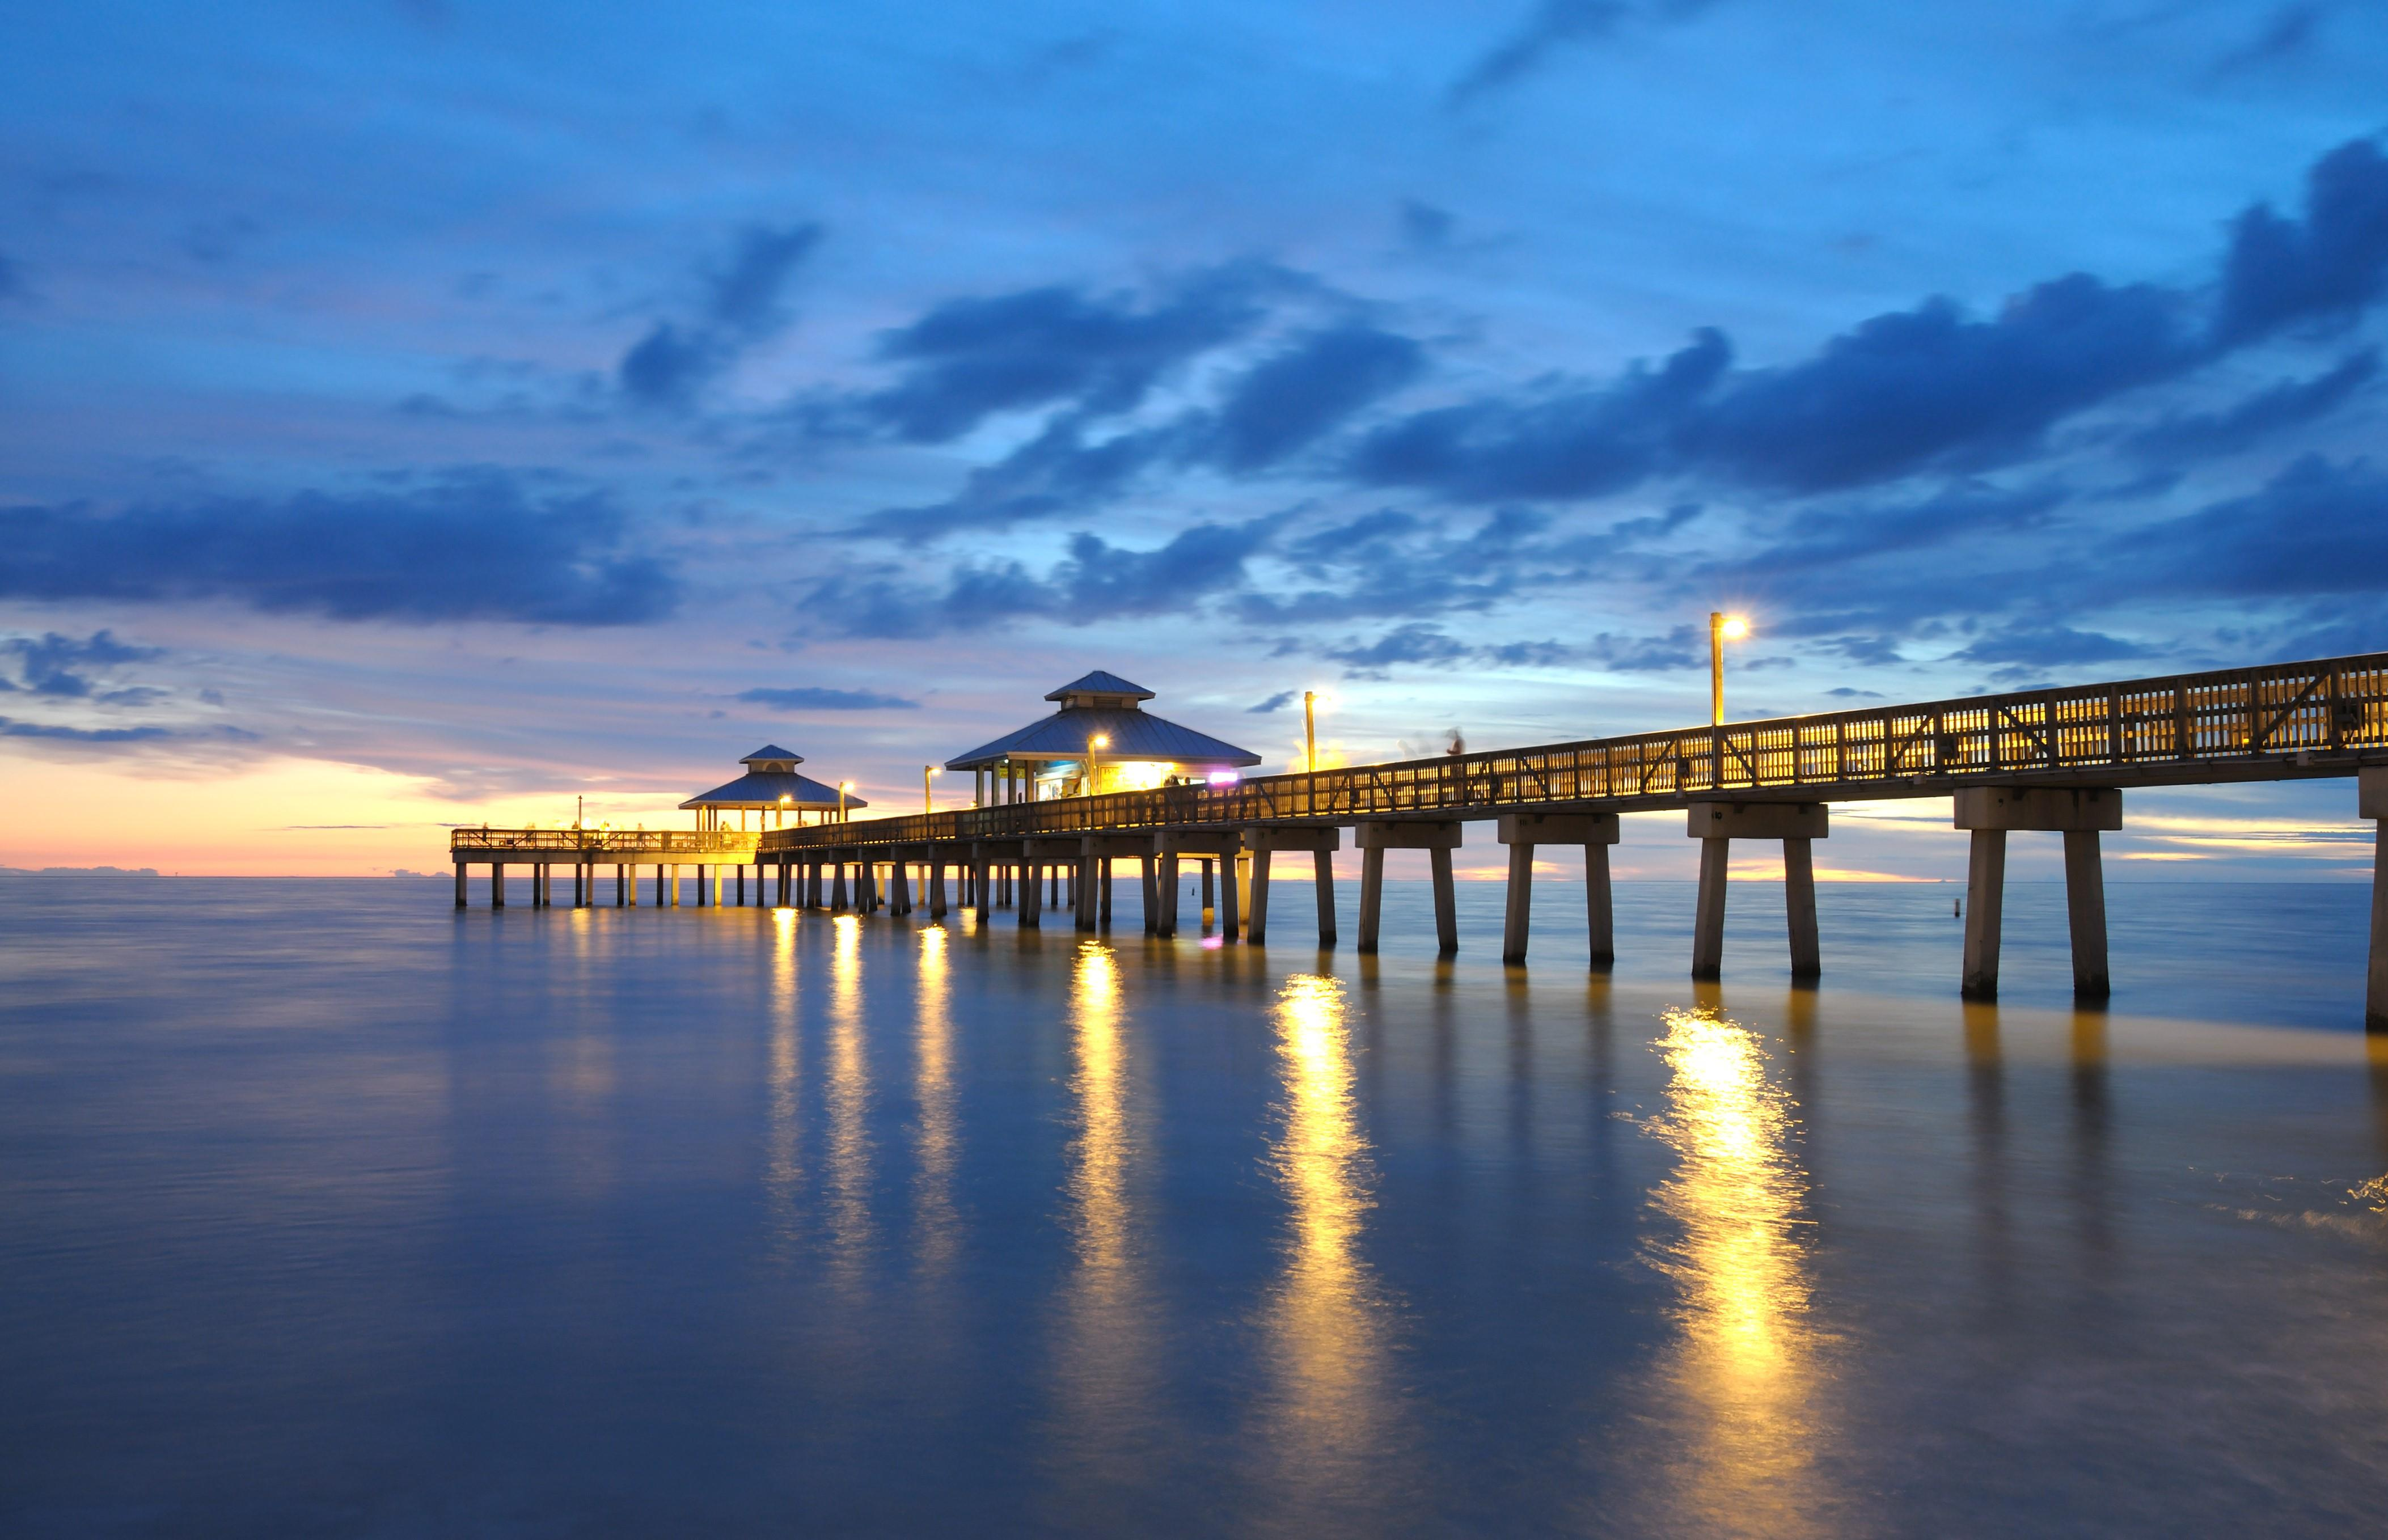 Spend a day fishing on the pier.